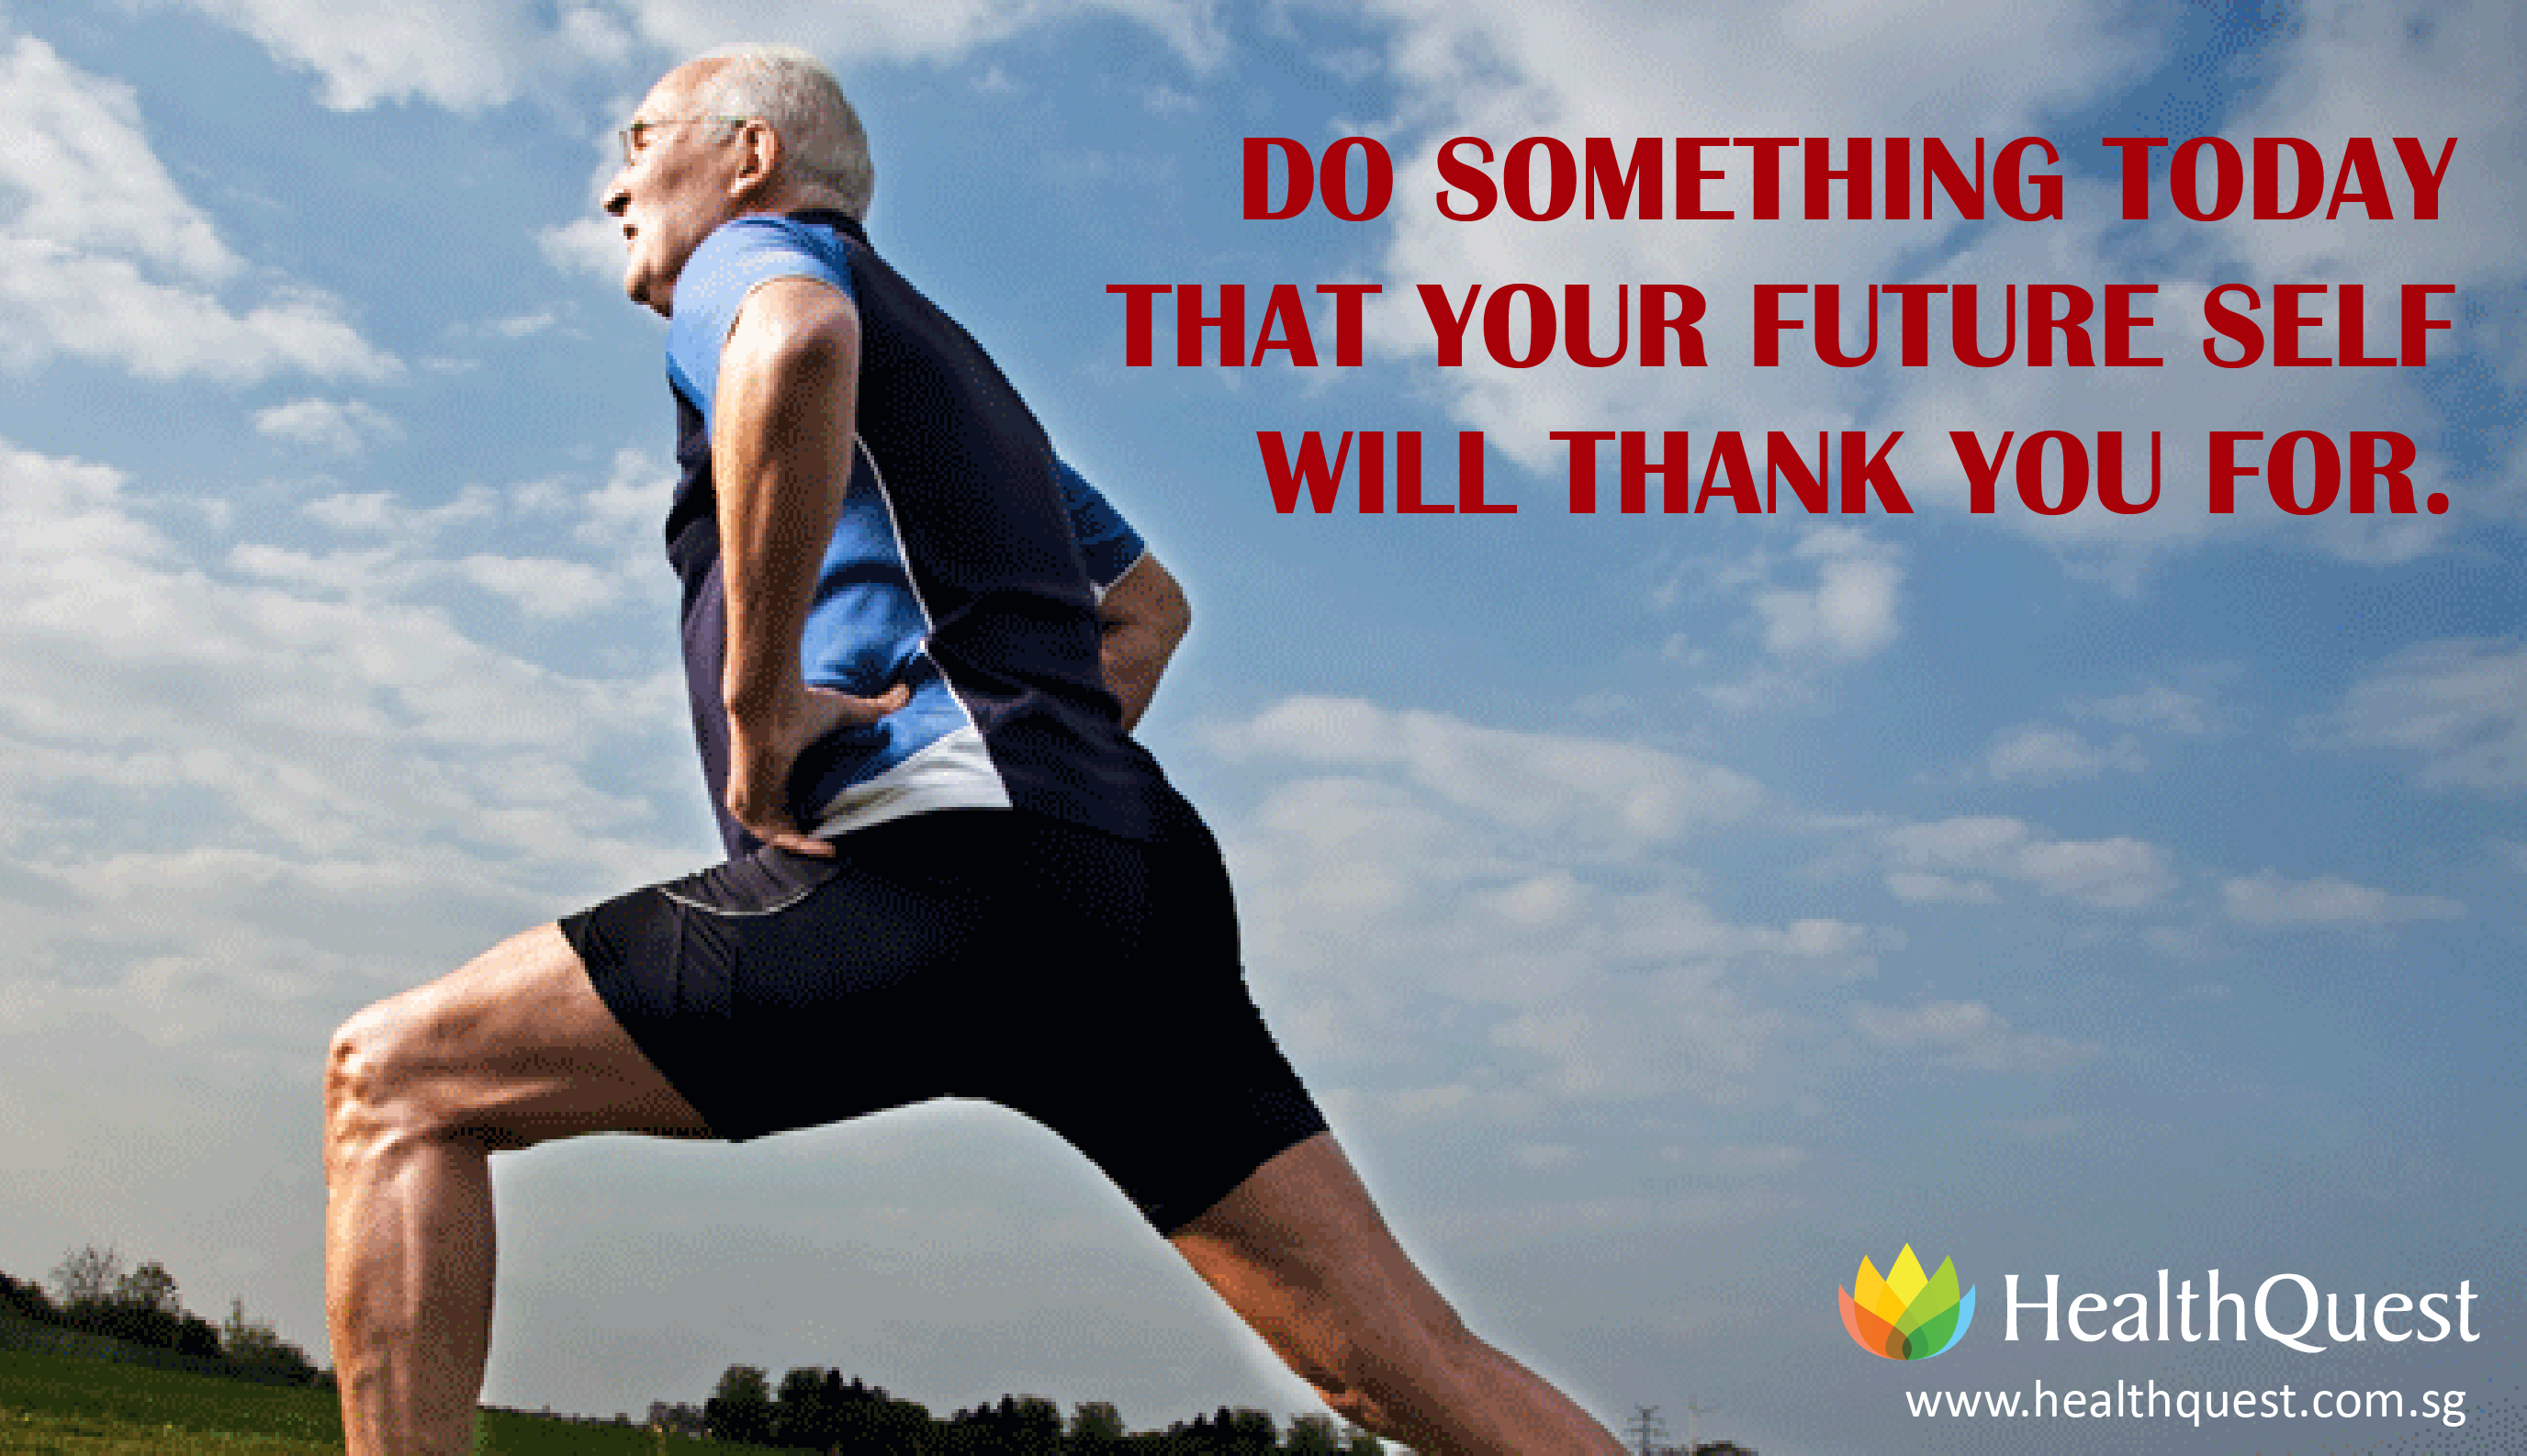 Don't end your day today without doing at least 1 productive thing. Going for a walk, 10 minutes of meditation or yoga or even just doing something you normally dont, like cooking yourself a nice wholesome dinner. It can be a fun way to add more meaning to your days. Love, from all of us here at HealthQuest!